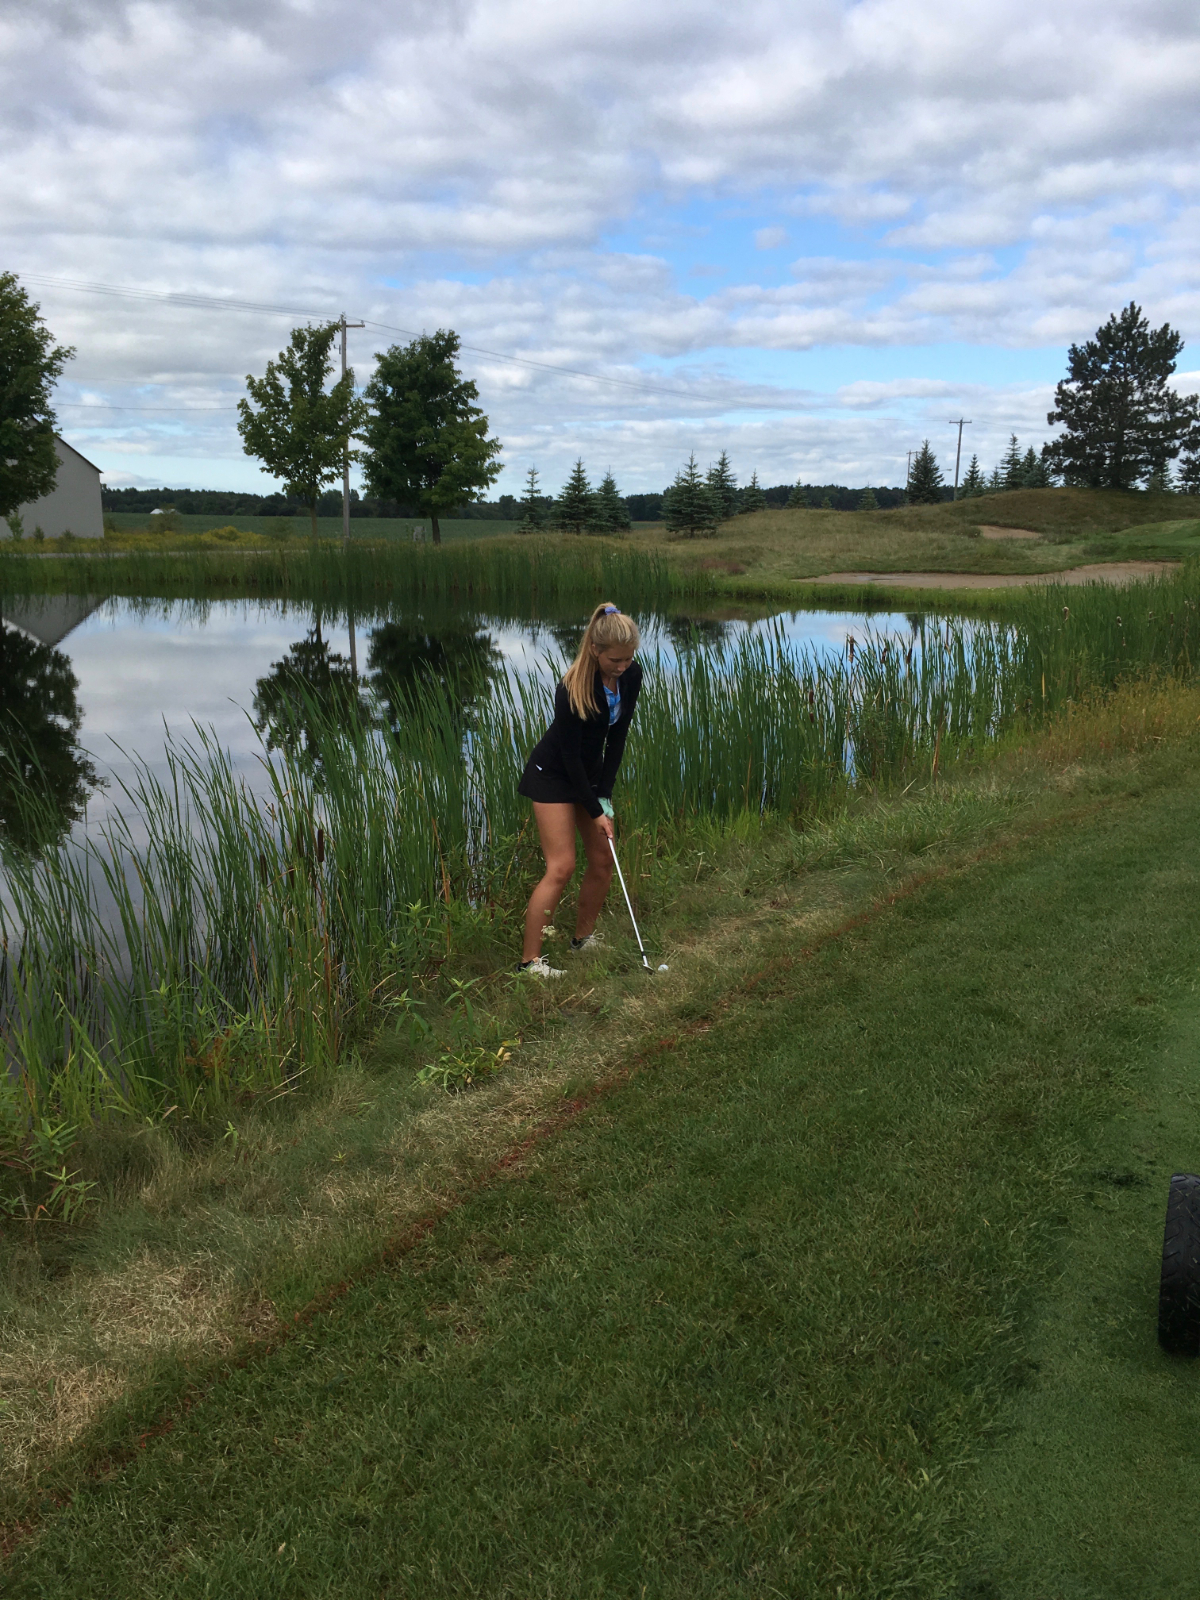 Gandy Qualifies for State Meet